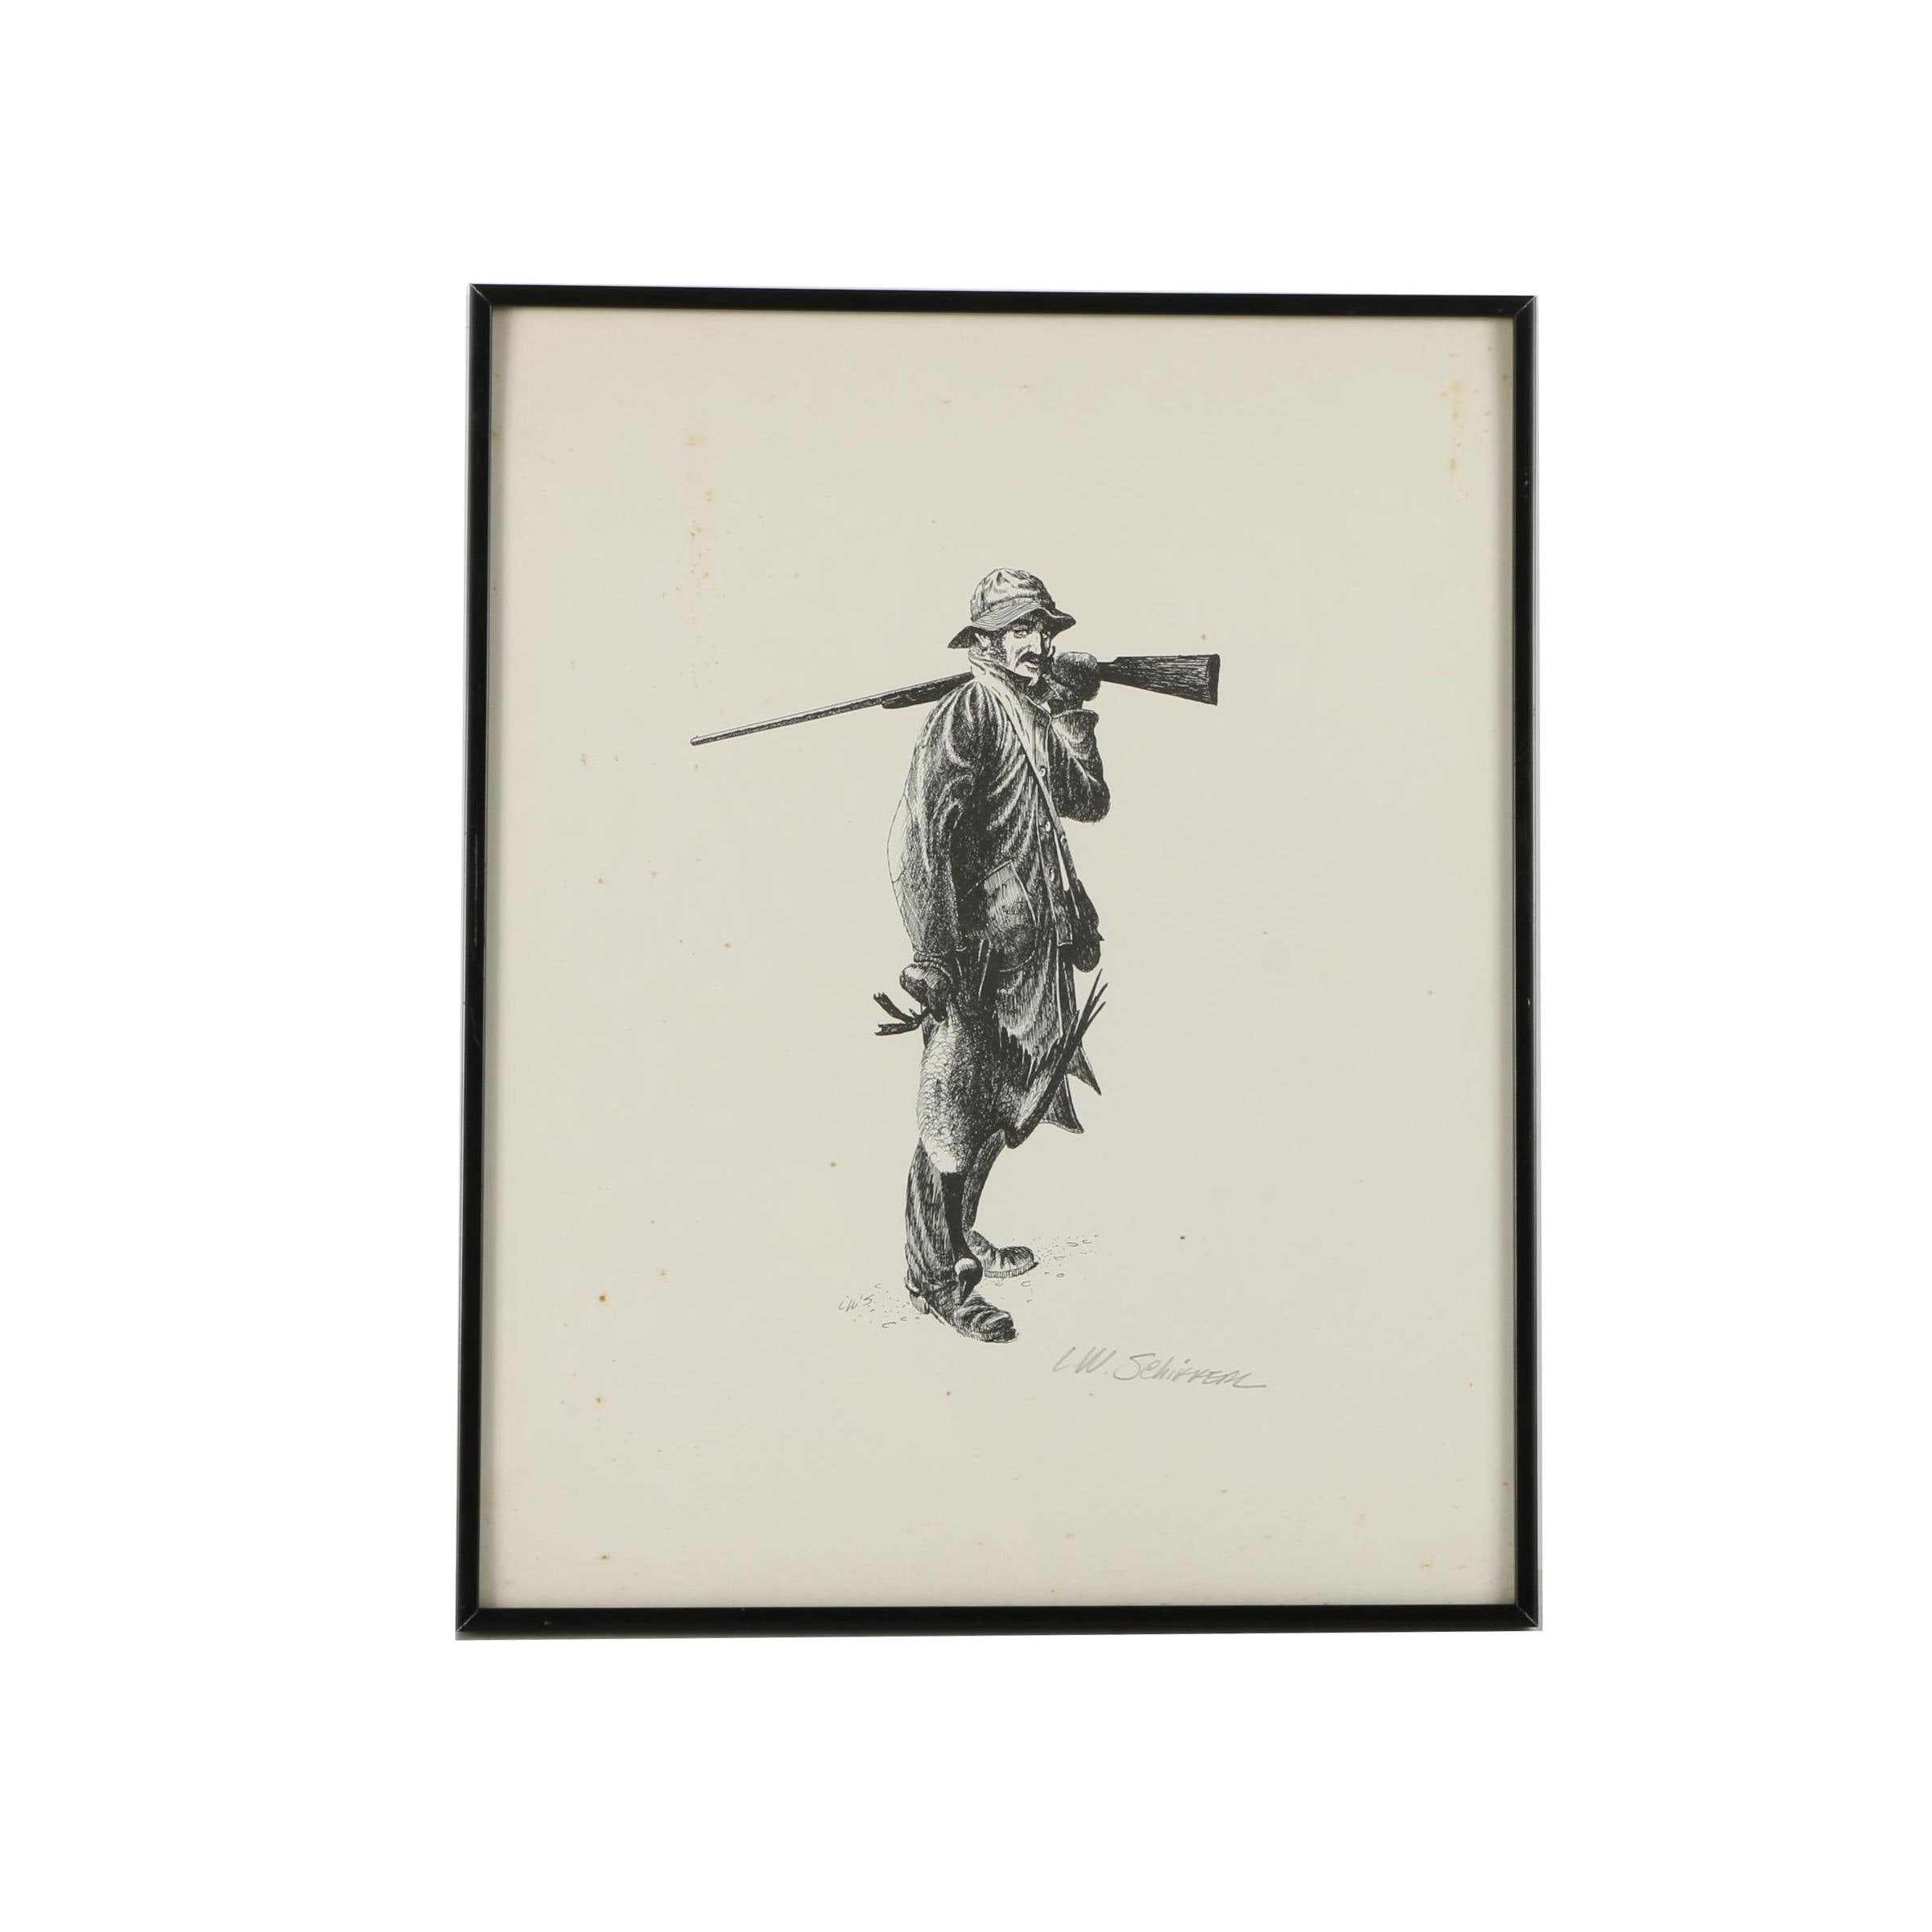 L. W. Schirrem Ink Drawing on Paper of a Hunter with His Rifle and Game